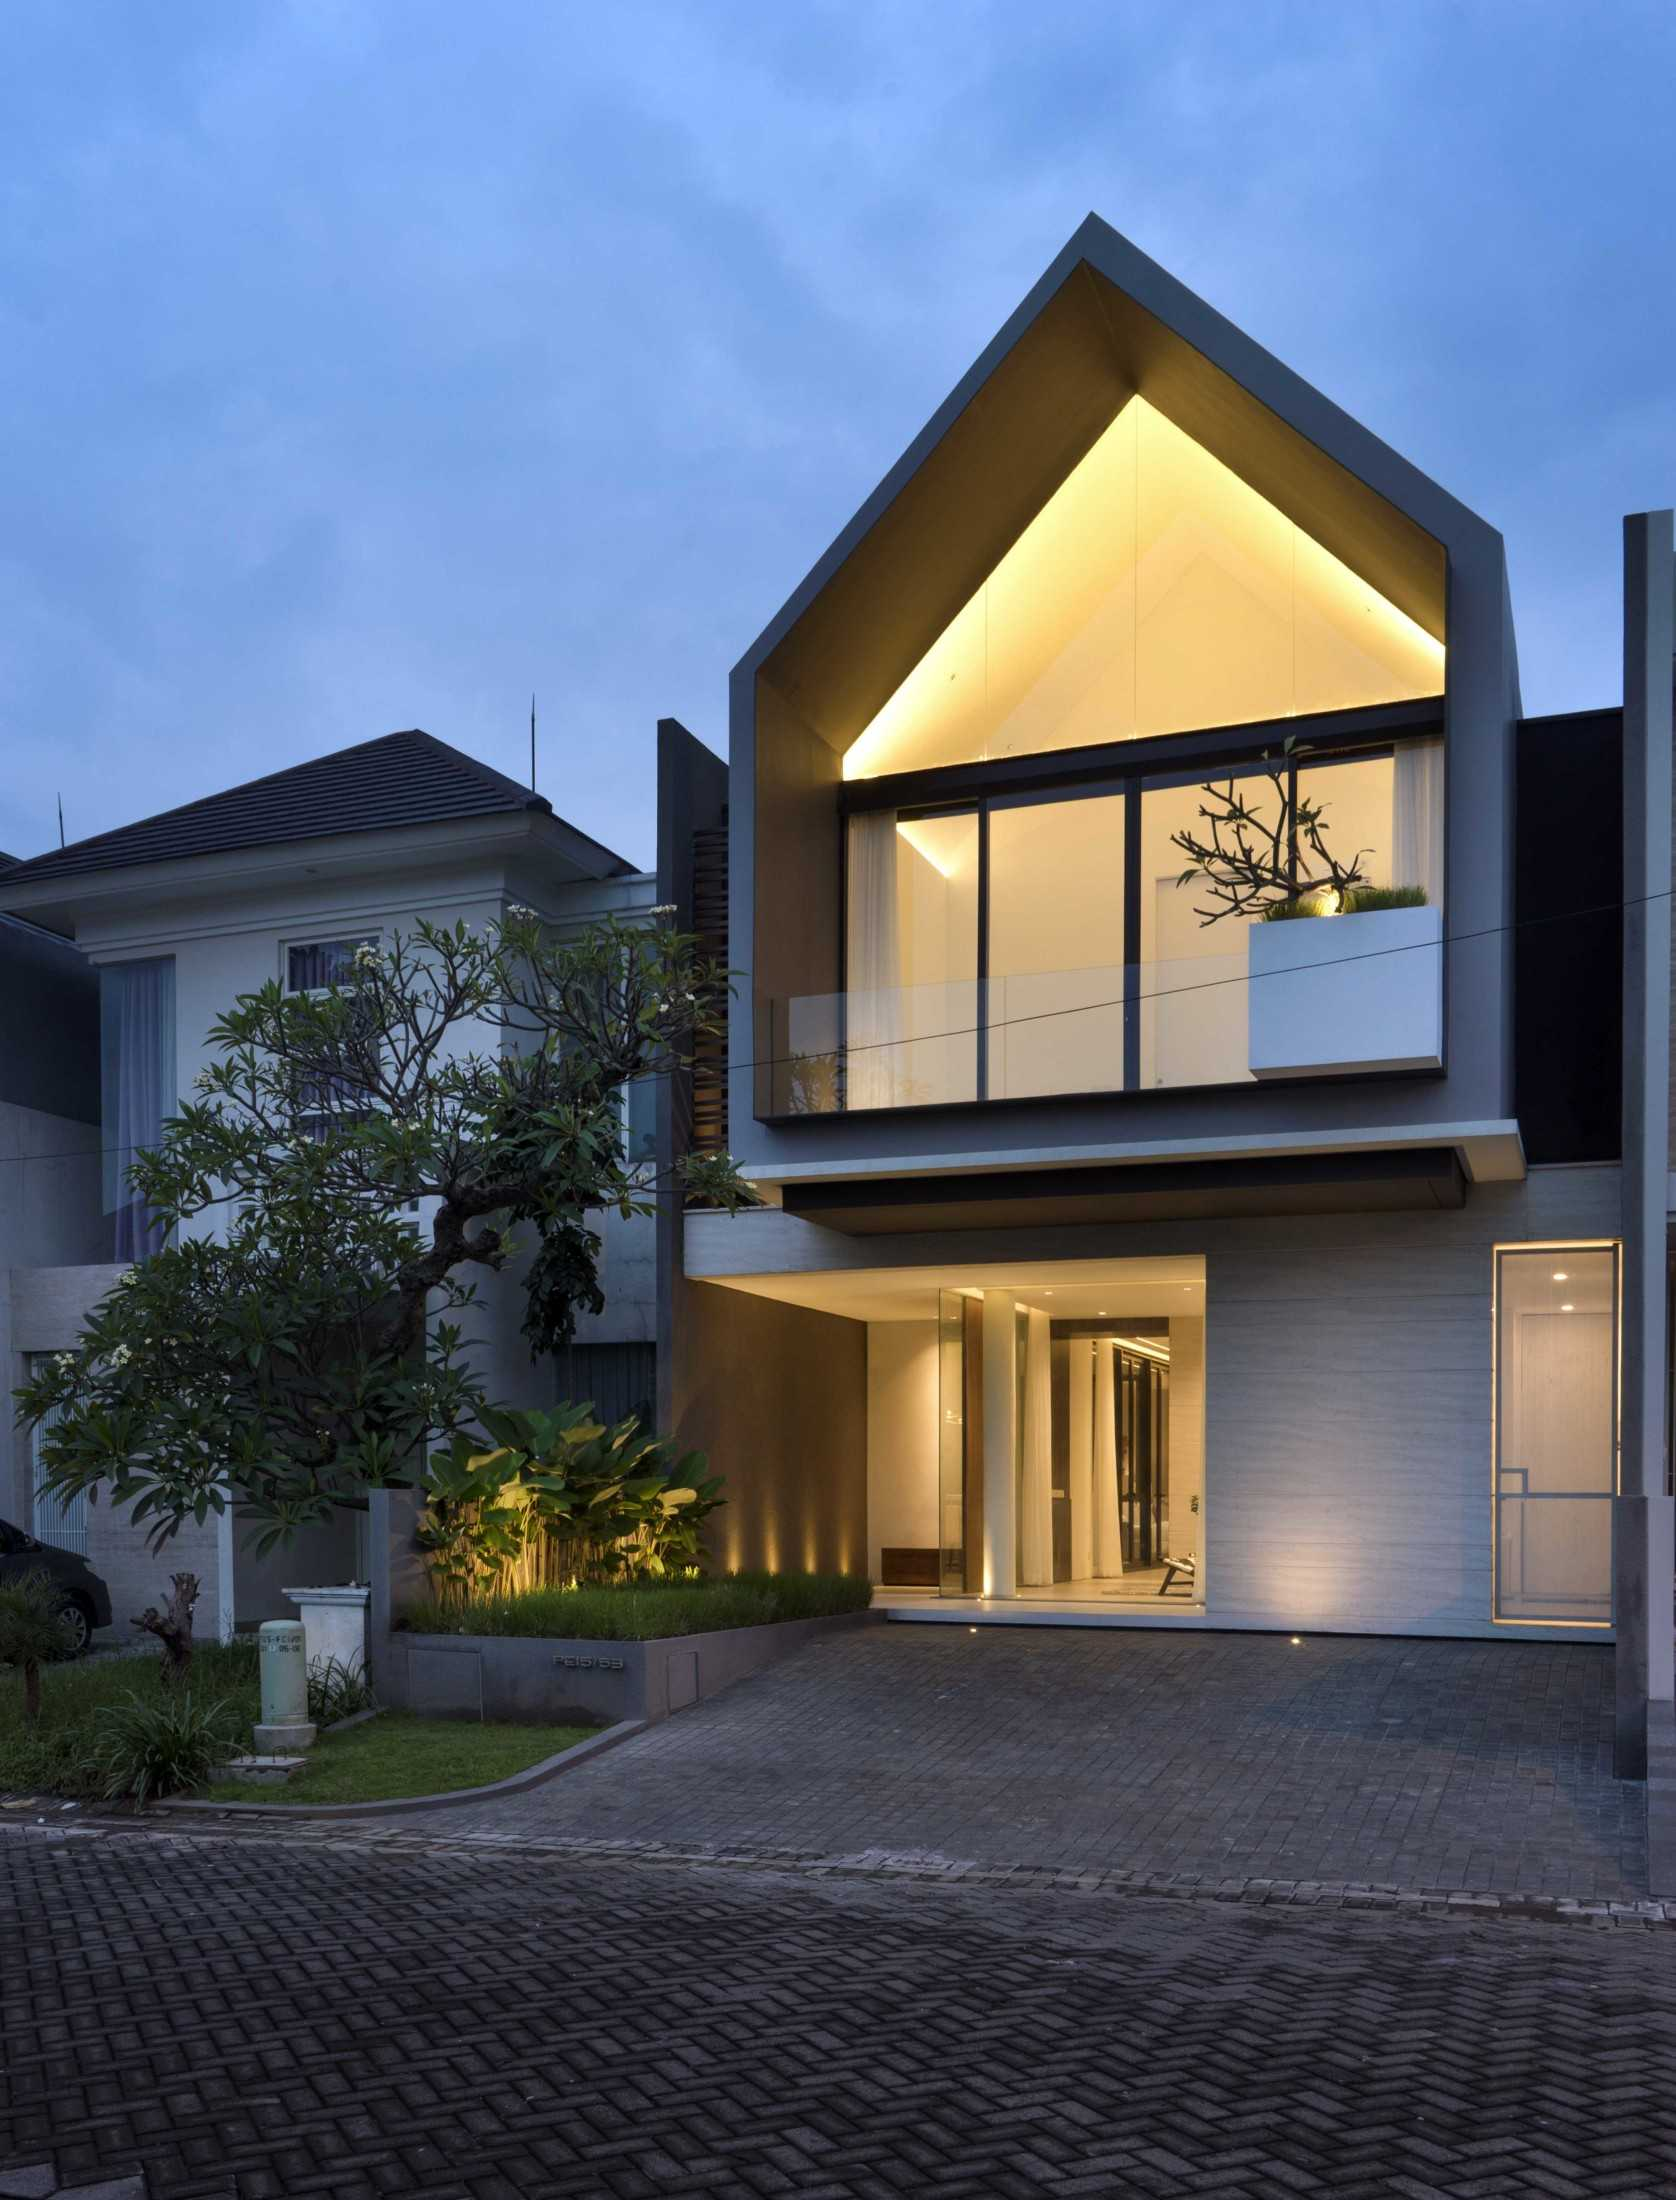 Simple Projects Architecture 'hhh' House Surabaya, Kota Sby, Jawa Timur, Indonesia  Simple-Projects-Architecture-Hhh-House  75053